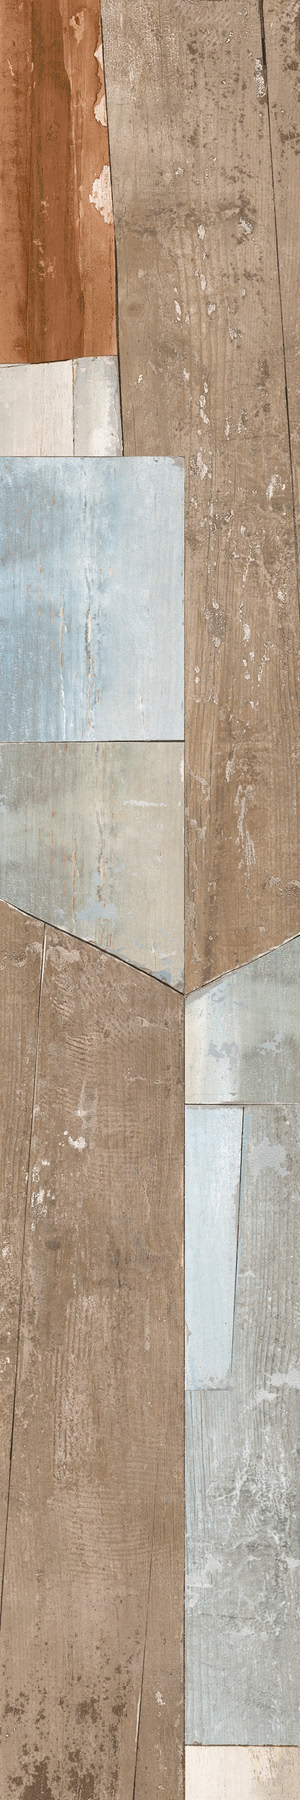 Ceramica Del Conca AR Artelegno Warhol Rett. 20x120 , Bathroom, Living room, Public spaces, Wood effect effect, Glazed porcelain stoneware, wall & floor, Matte surface, Semi-polished surface, non-rectified edge, Rectified edge, Shade variation V4